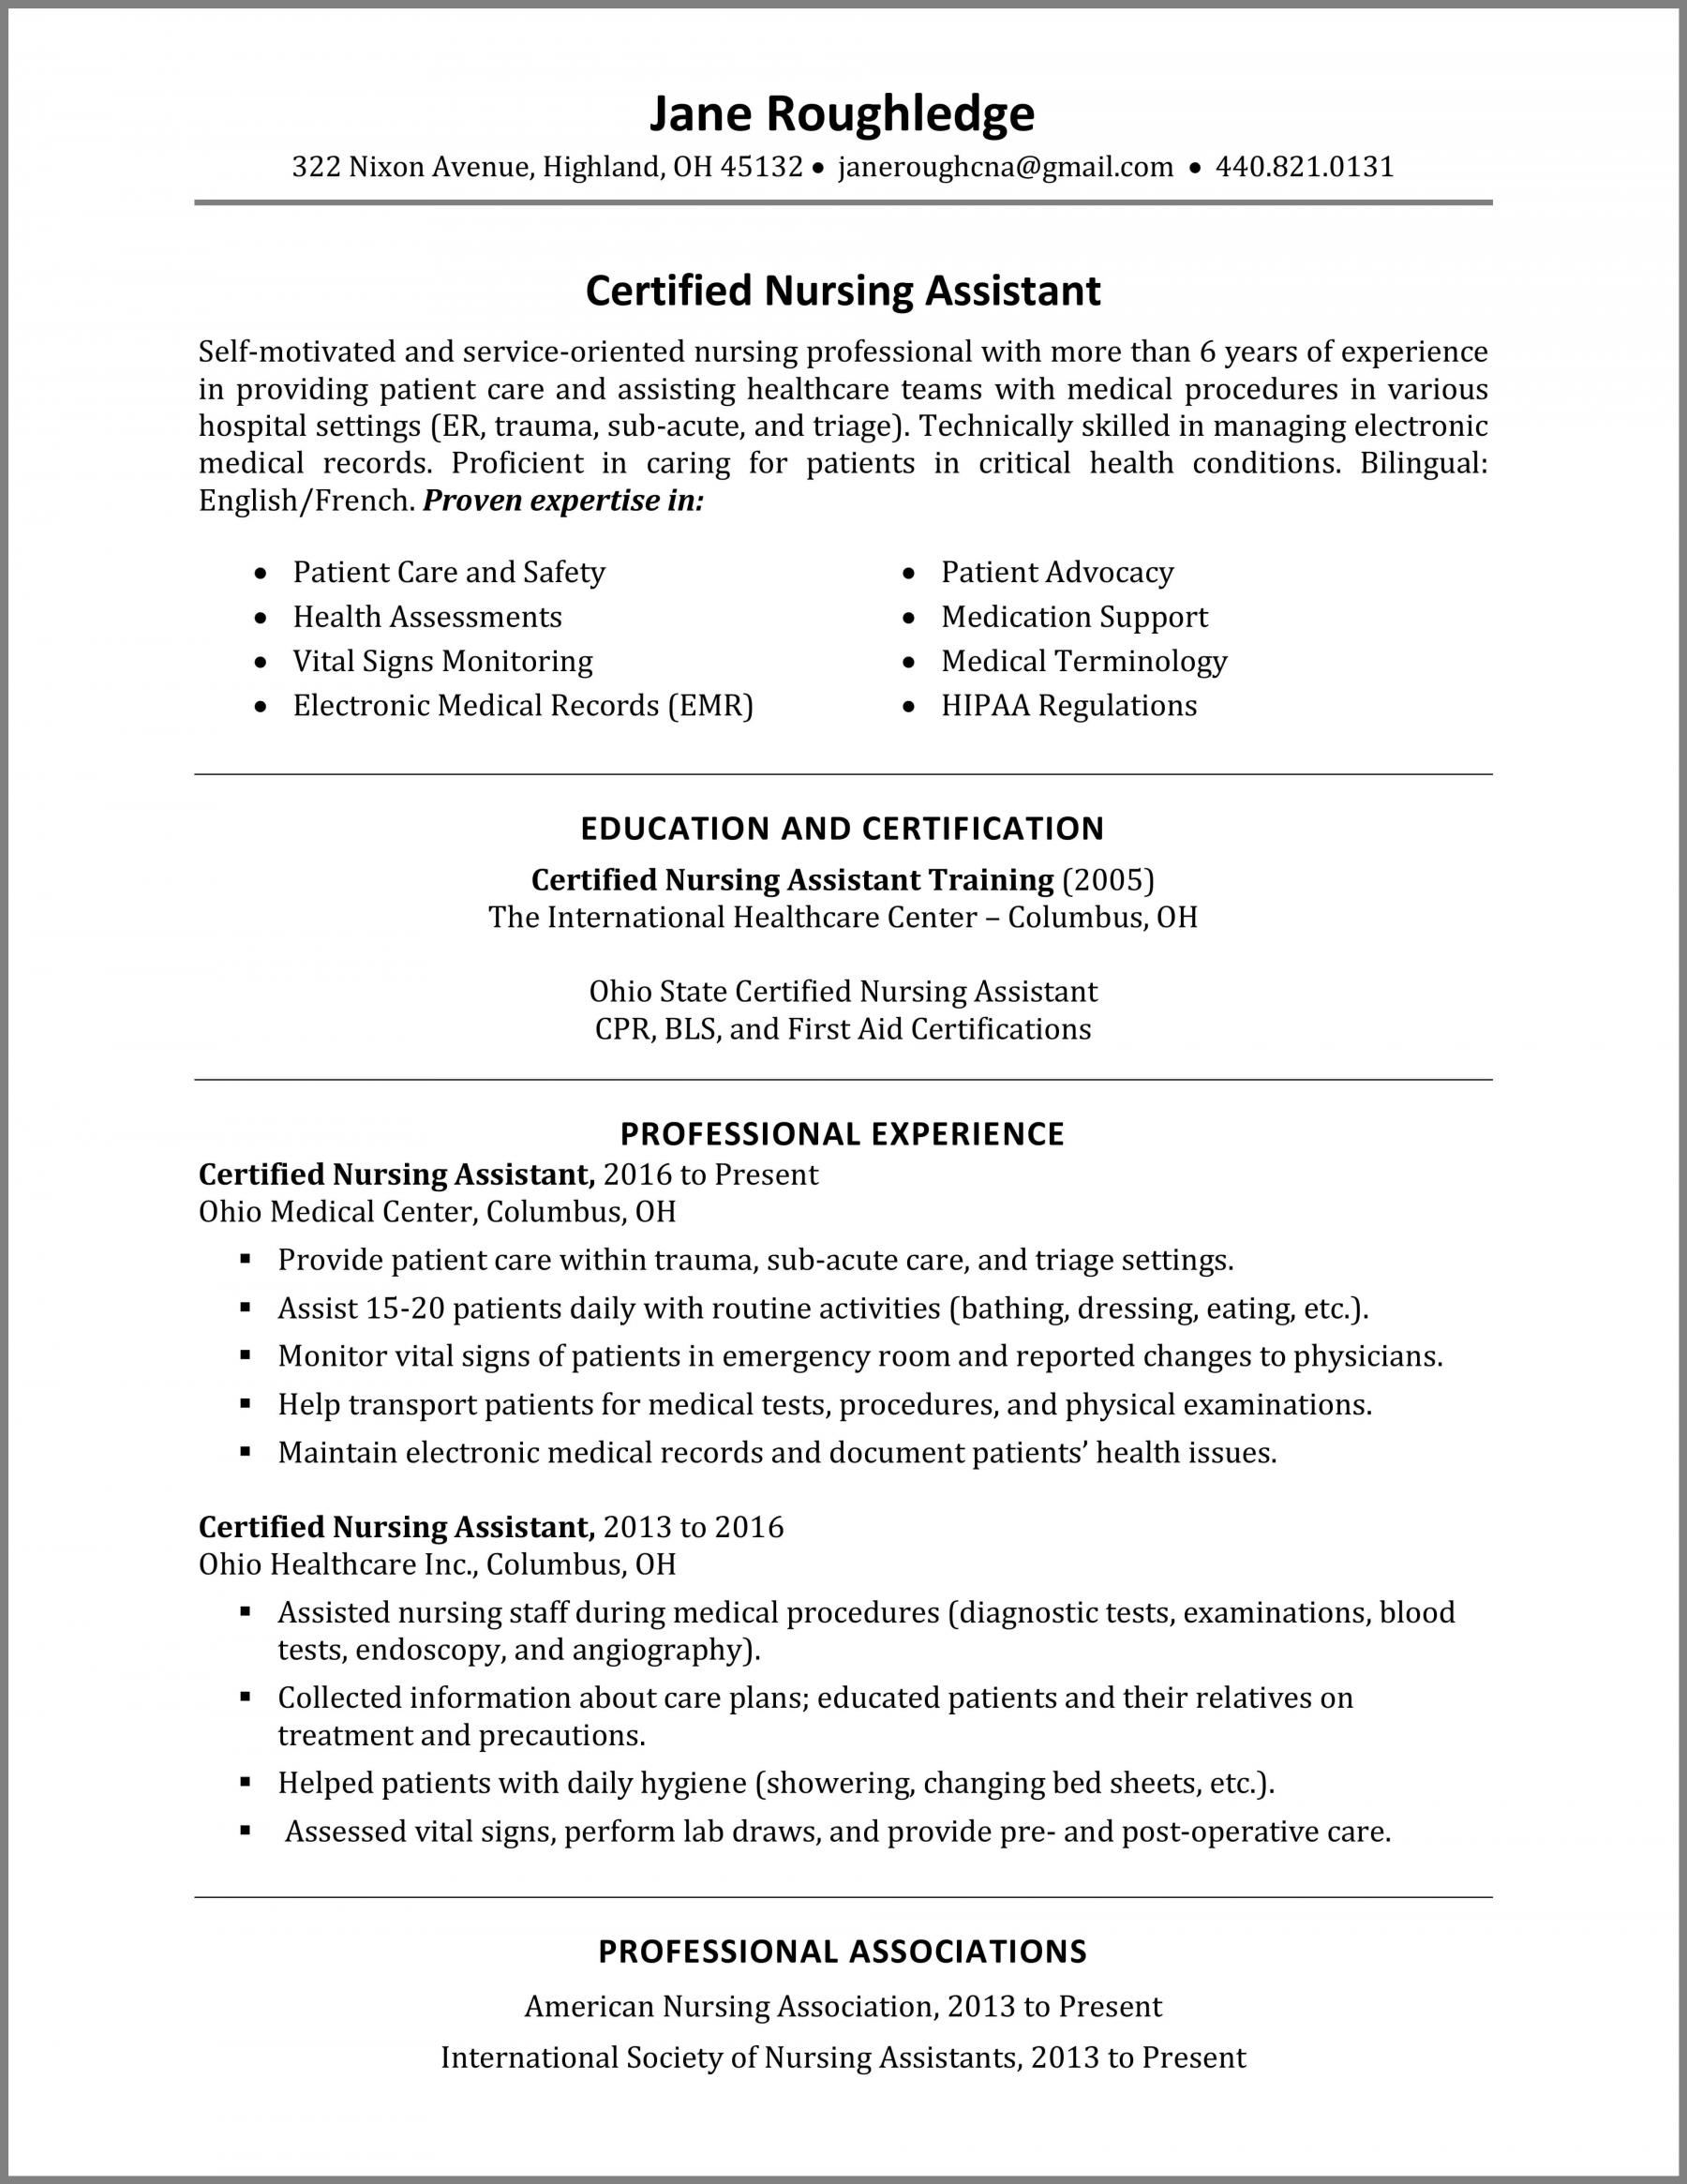 certified nursing assistant cna resume skills best examples x5rx7sgwpiwc7jikbk1v virtual Resume Nursing Assistant Resume Skills